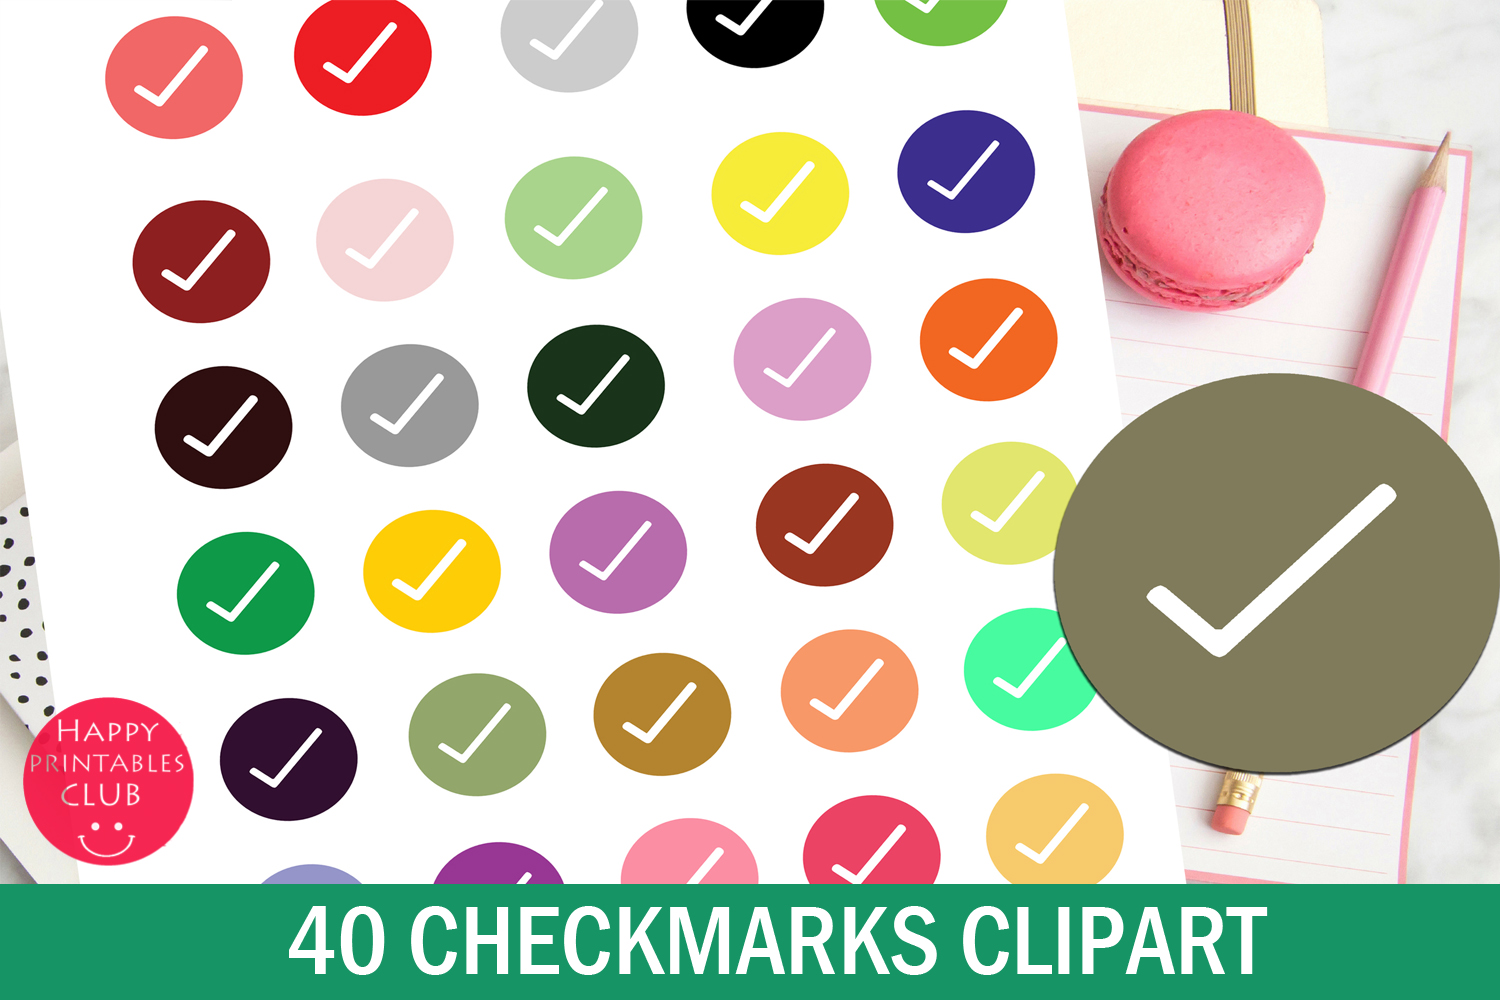 40 CheckMarks Clipart-Checkmark Icons-School Stickers example image 2